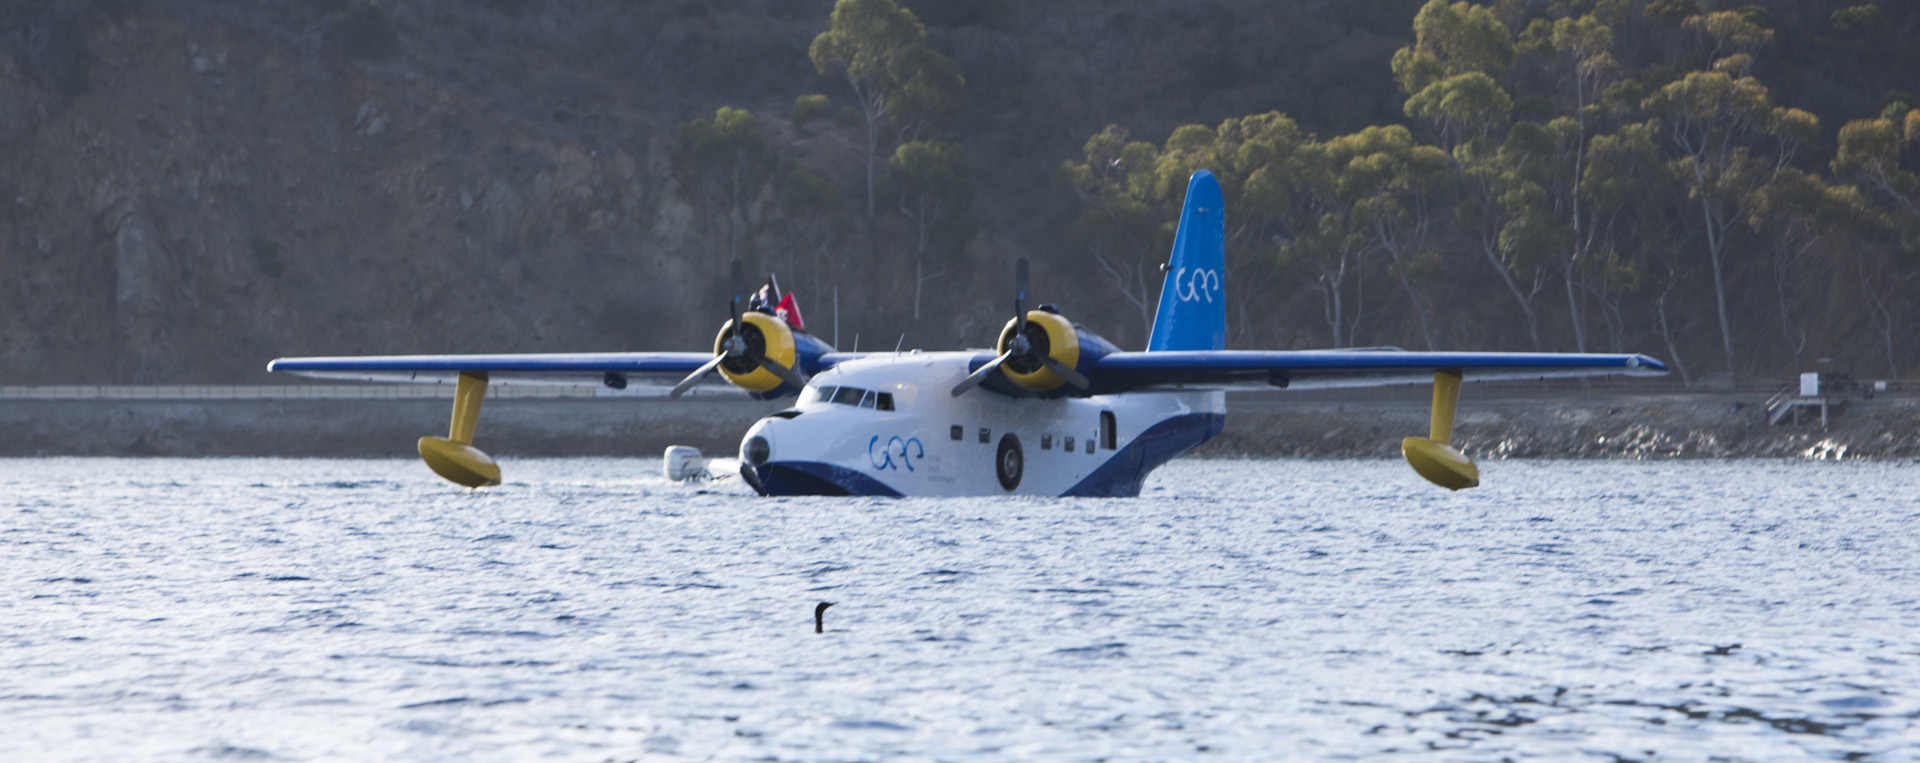 A Grumman Albatross bobbing in the waves at Avalon Harbor on Catalina Island. (image via Catalina Air Show)